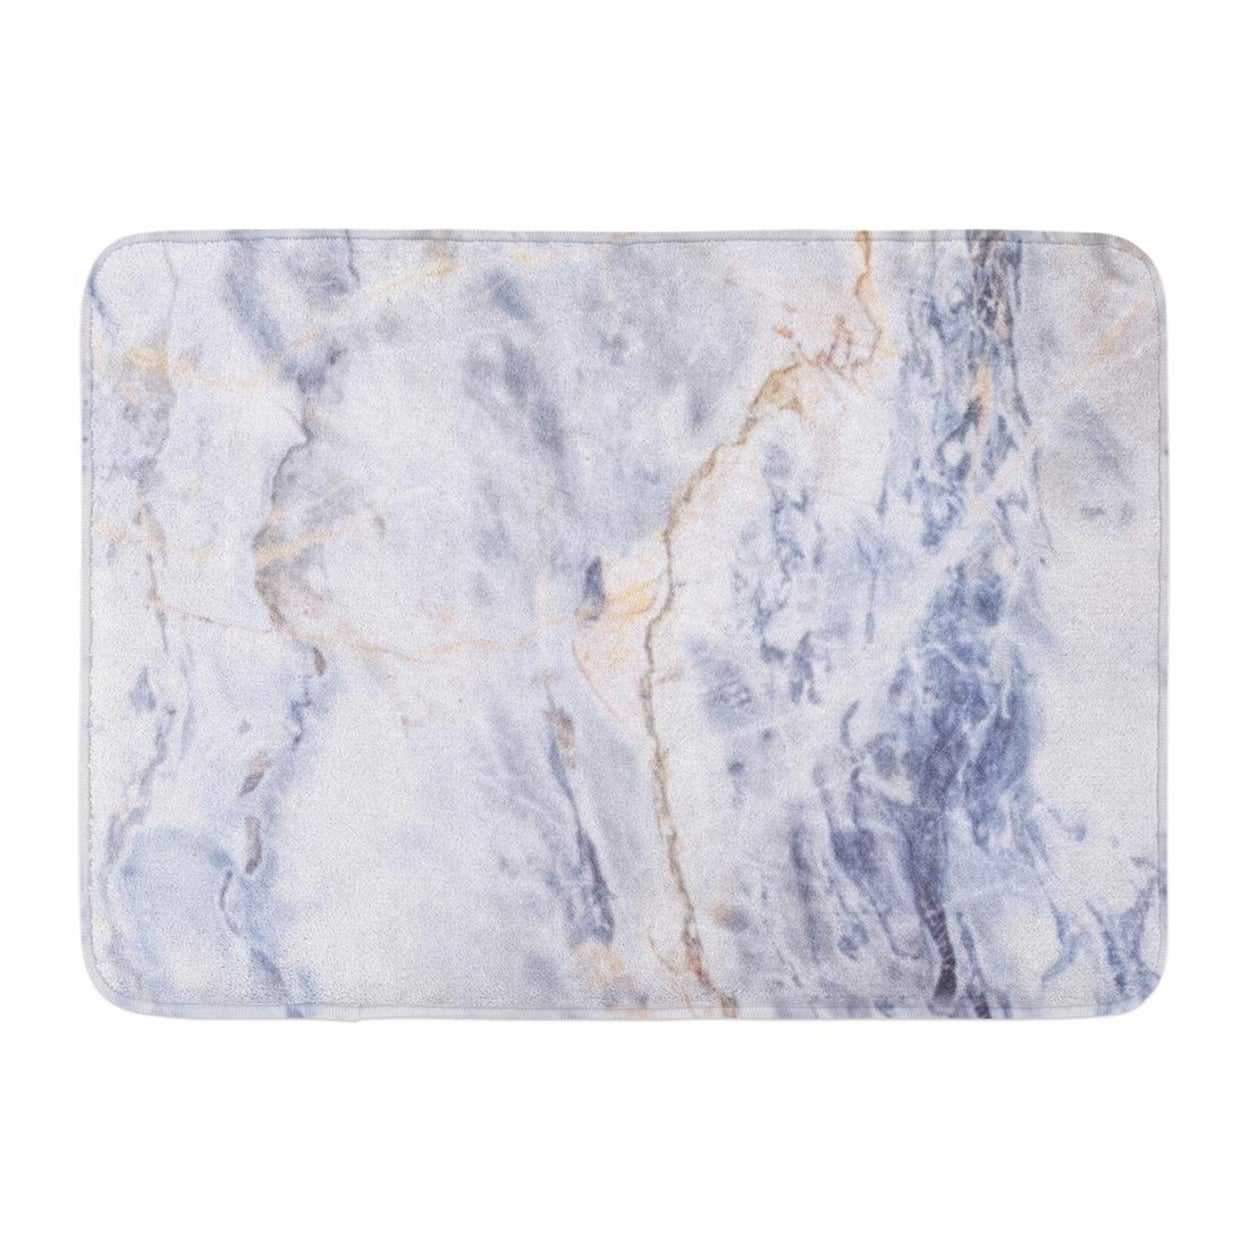 Blue Gold Gray Light Marble Stone Watercolor Color Pattern Doormat Floor Rug Bath Mat 23 6x15 7 Inch Multi On Sale Overstock 31780449